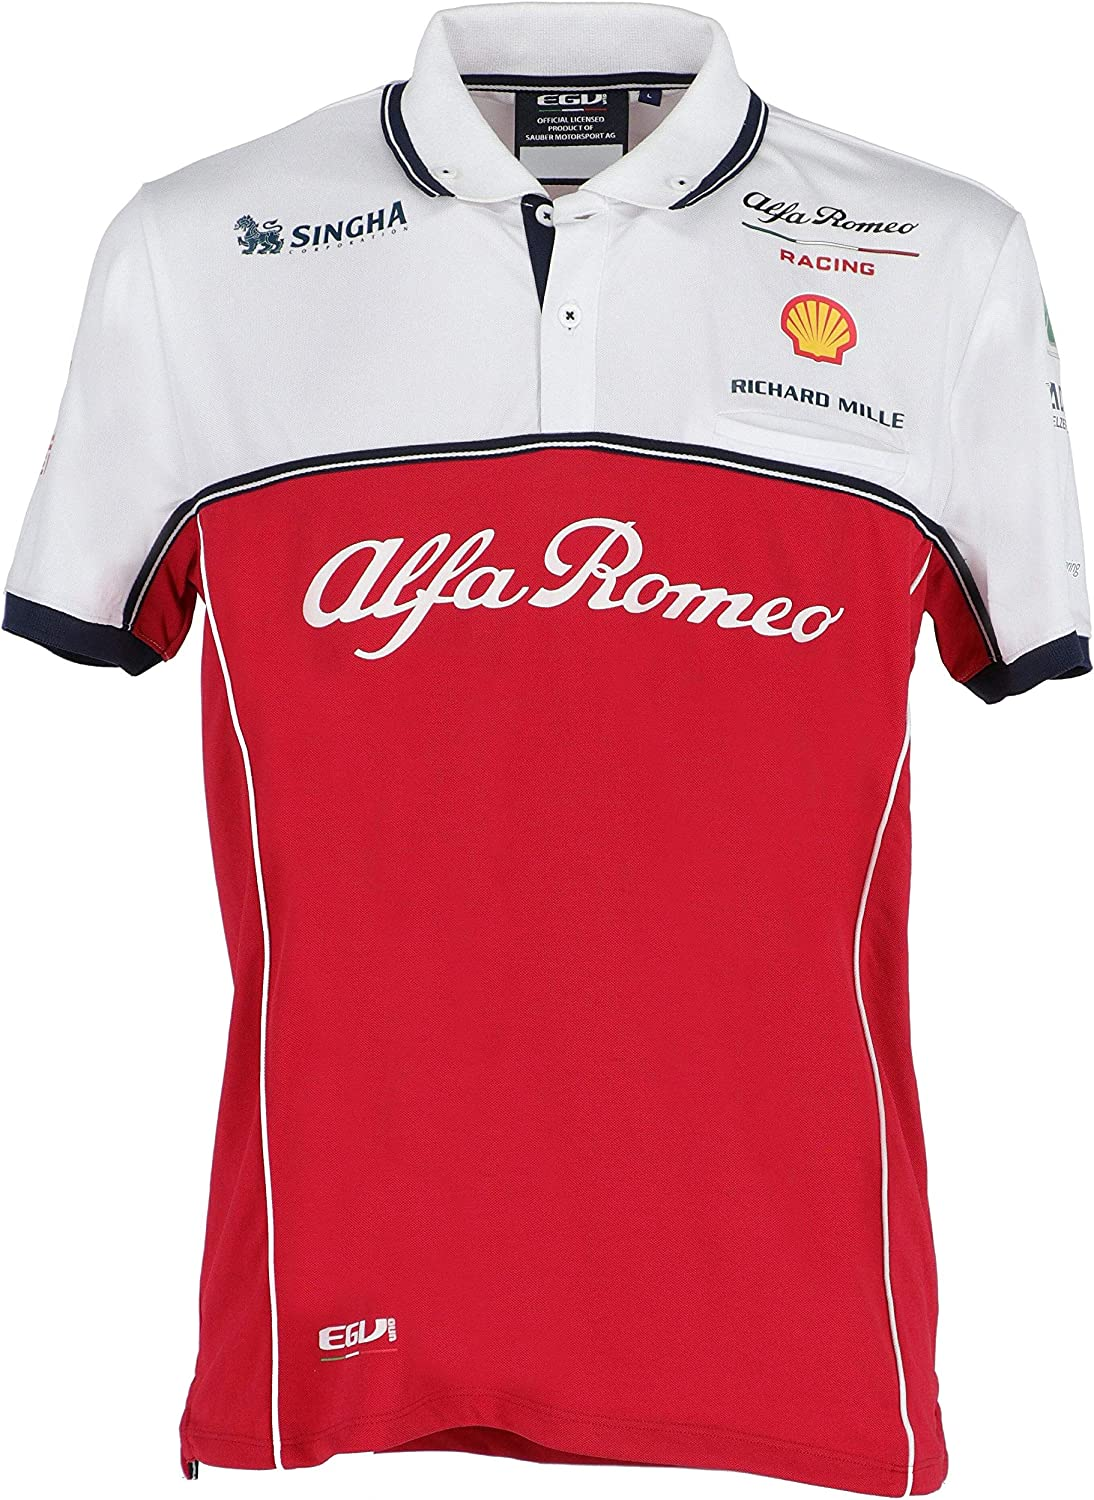 Alfa Romeo Racing F1 2019 Men's Team Polo Shirt (M) Red/White